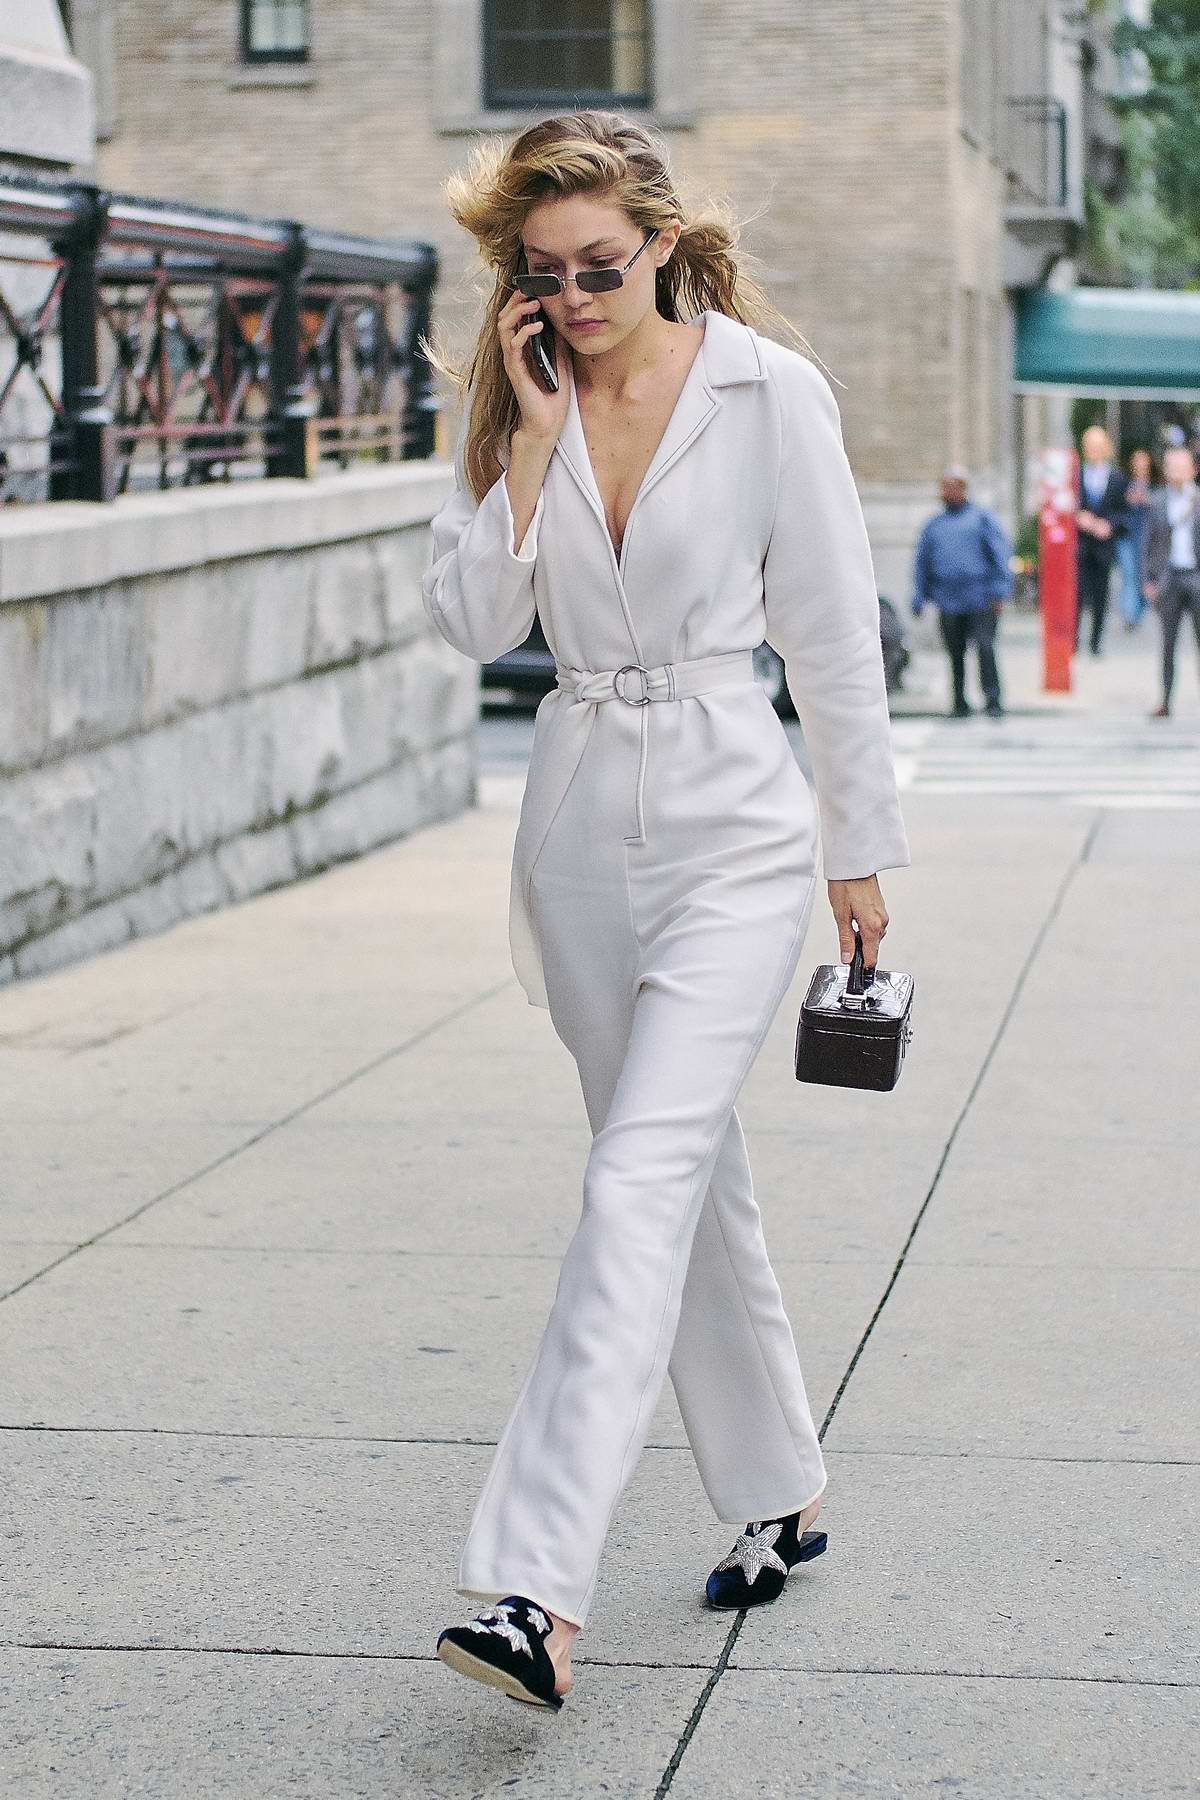 Gigi Hadid wearing all white while arriving at the Tom Ford fashion show in New York